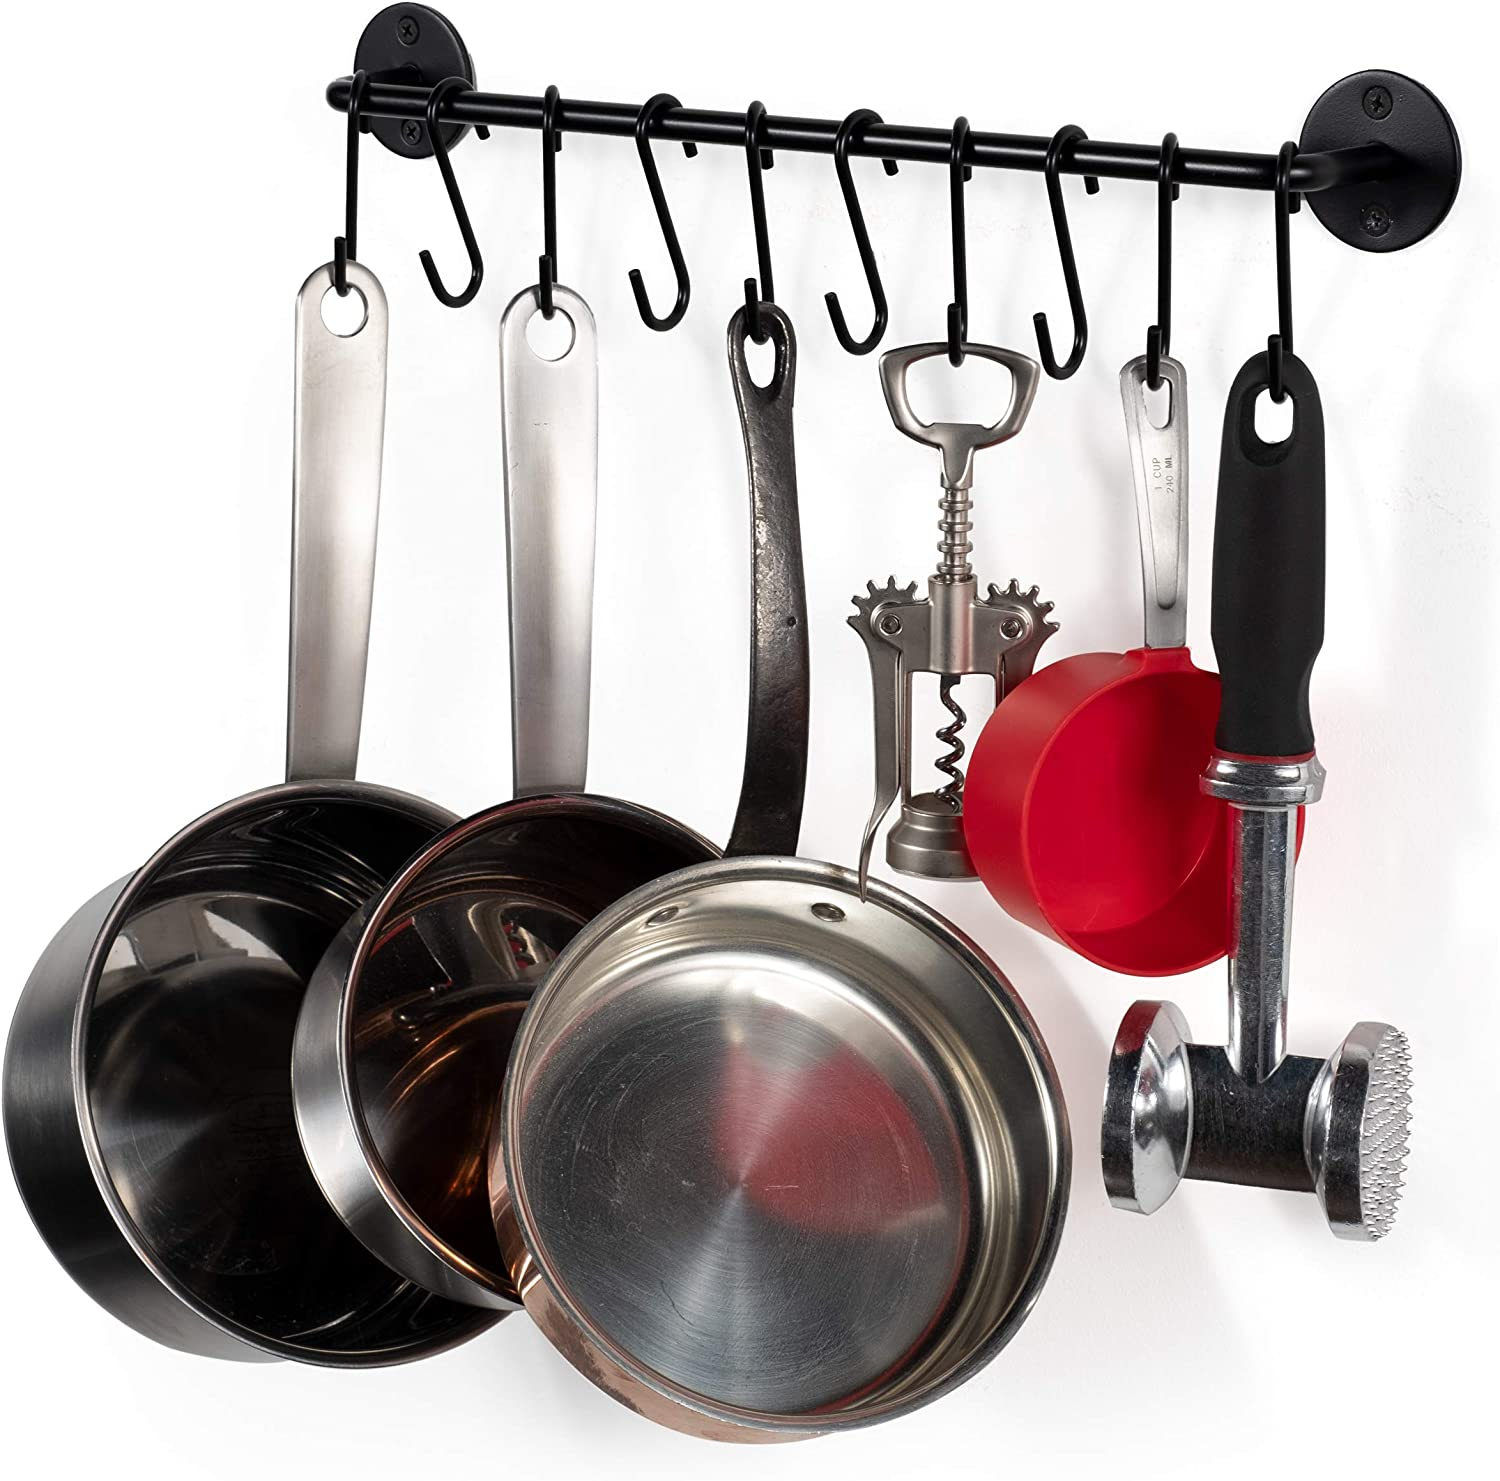 Amazon Com Wallniture Cucina 16 Wall Mount Kitchen Utensil Holder With 10 S Hooks For Hanging Pots And Pans Set And Lid Organizer Black Kitchen Dining